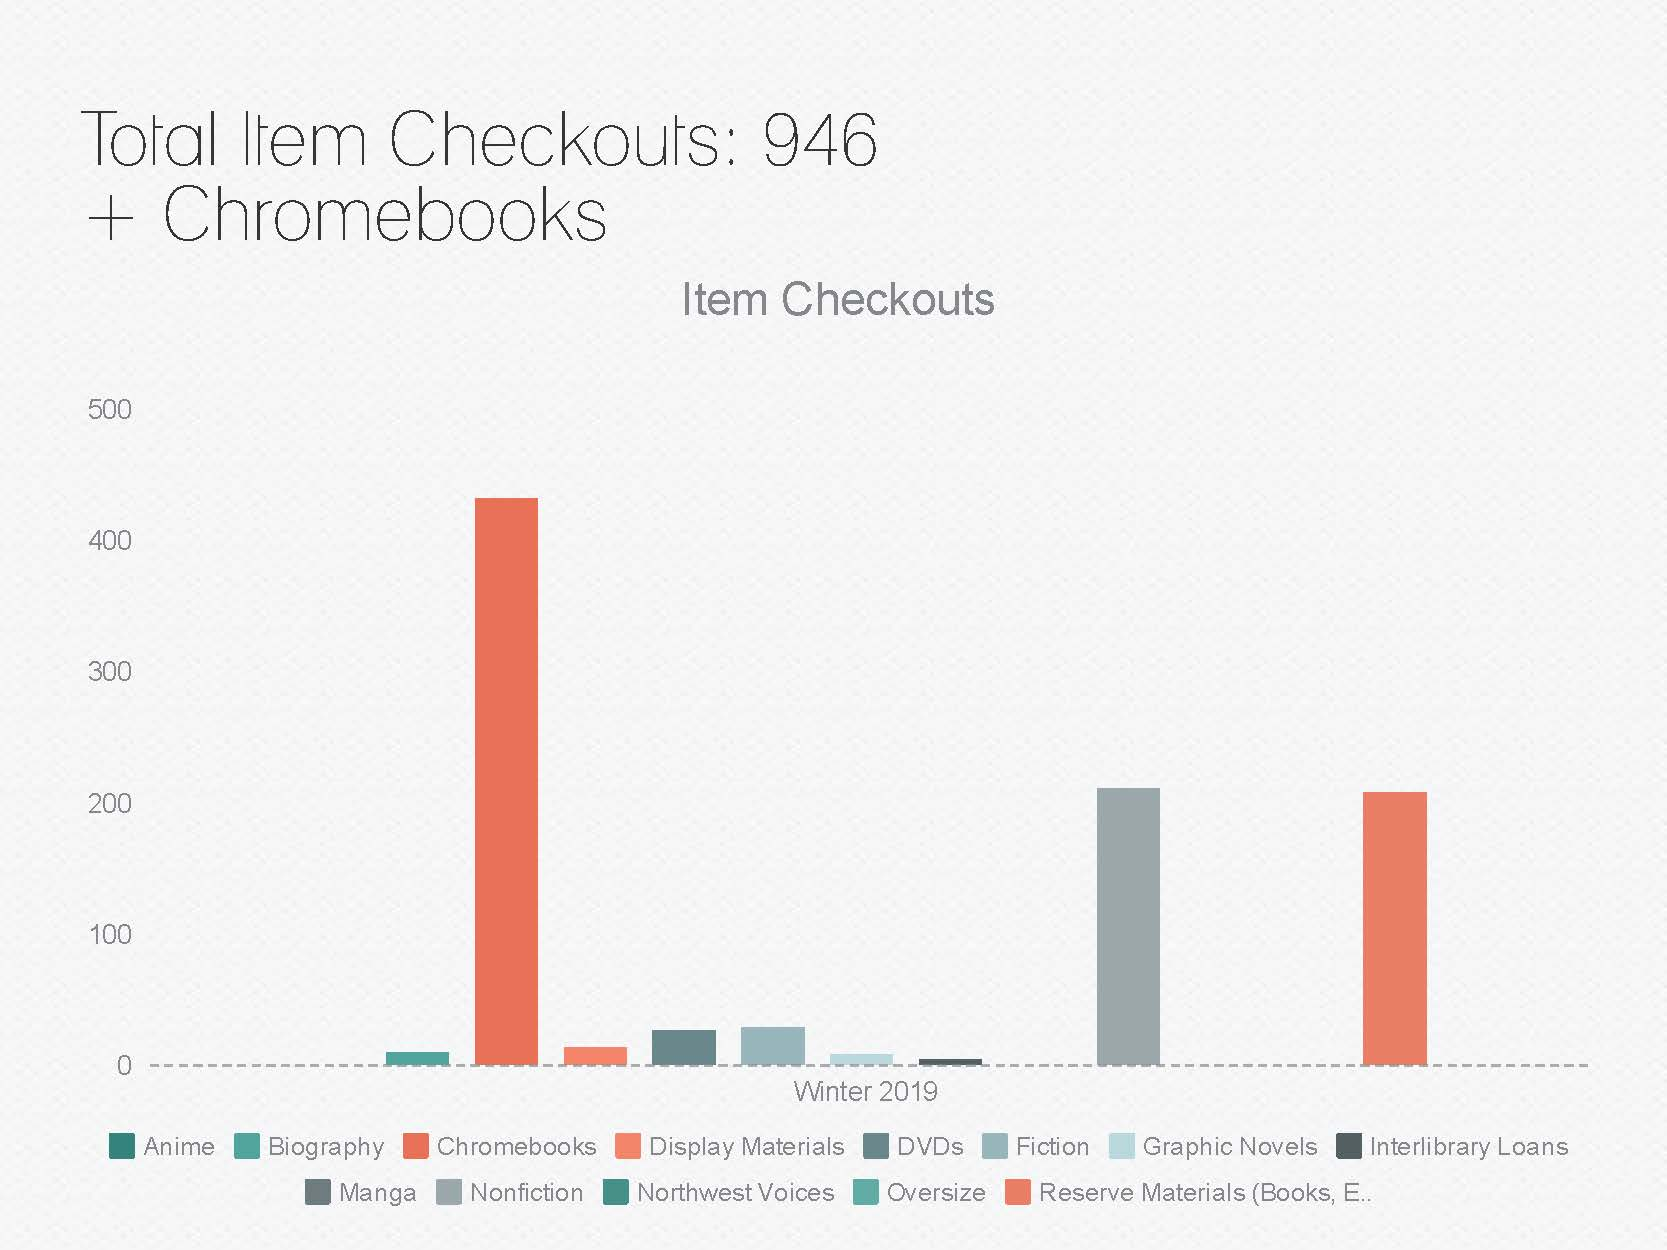 Total Item Checkouts (Including Chromebooks): 946